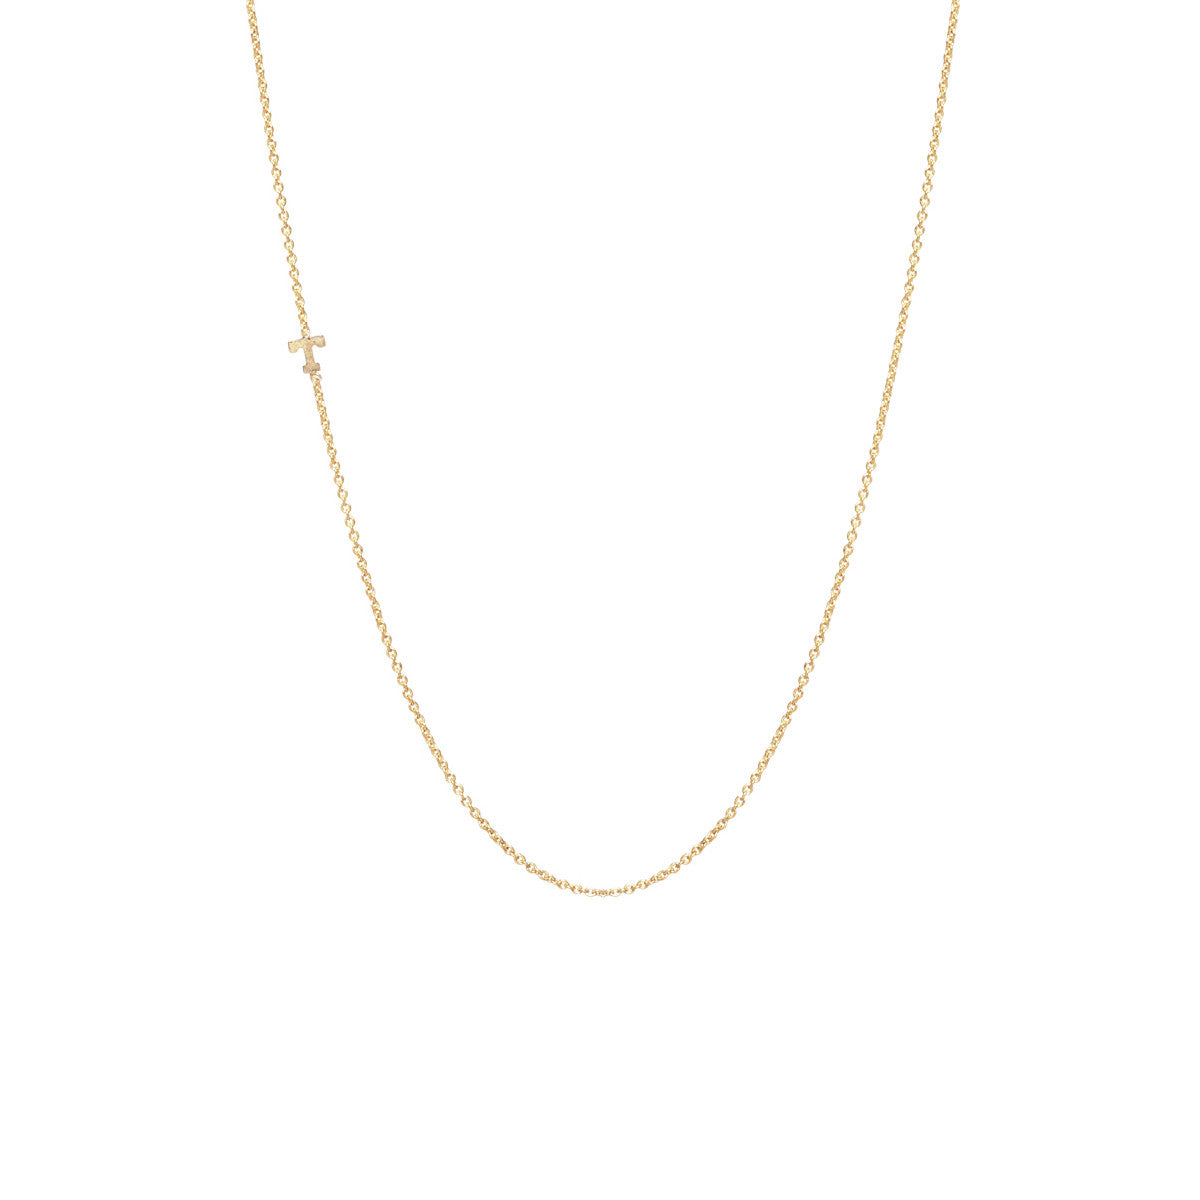 diamond two yellow my jewels darlings monogram necklace image gold aristides fine kp letter